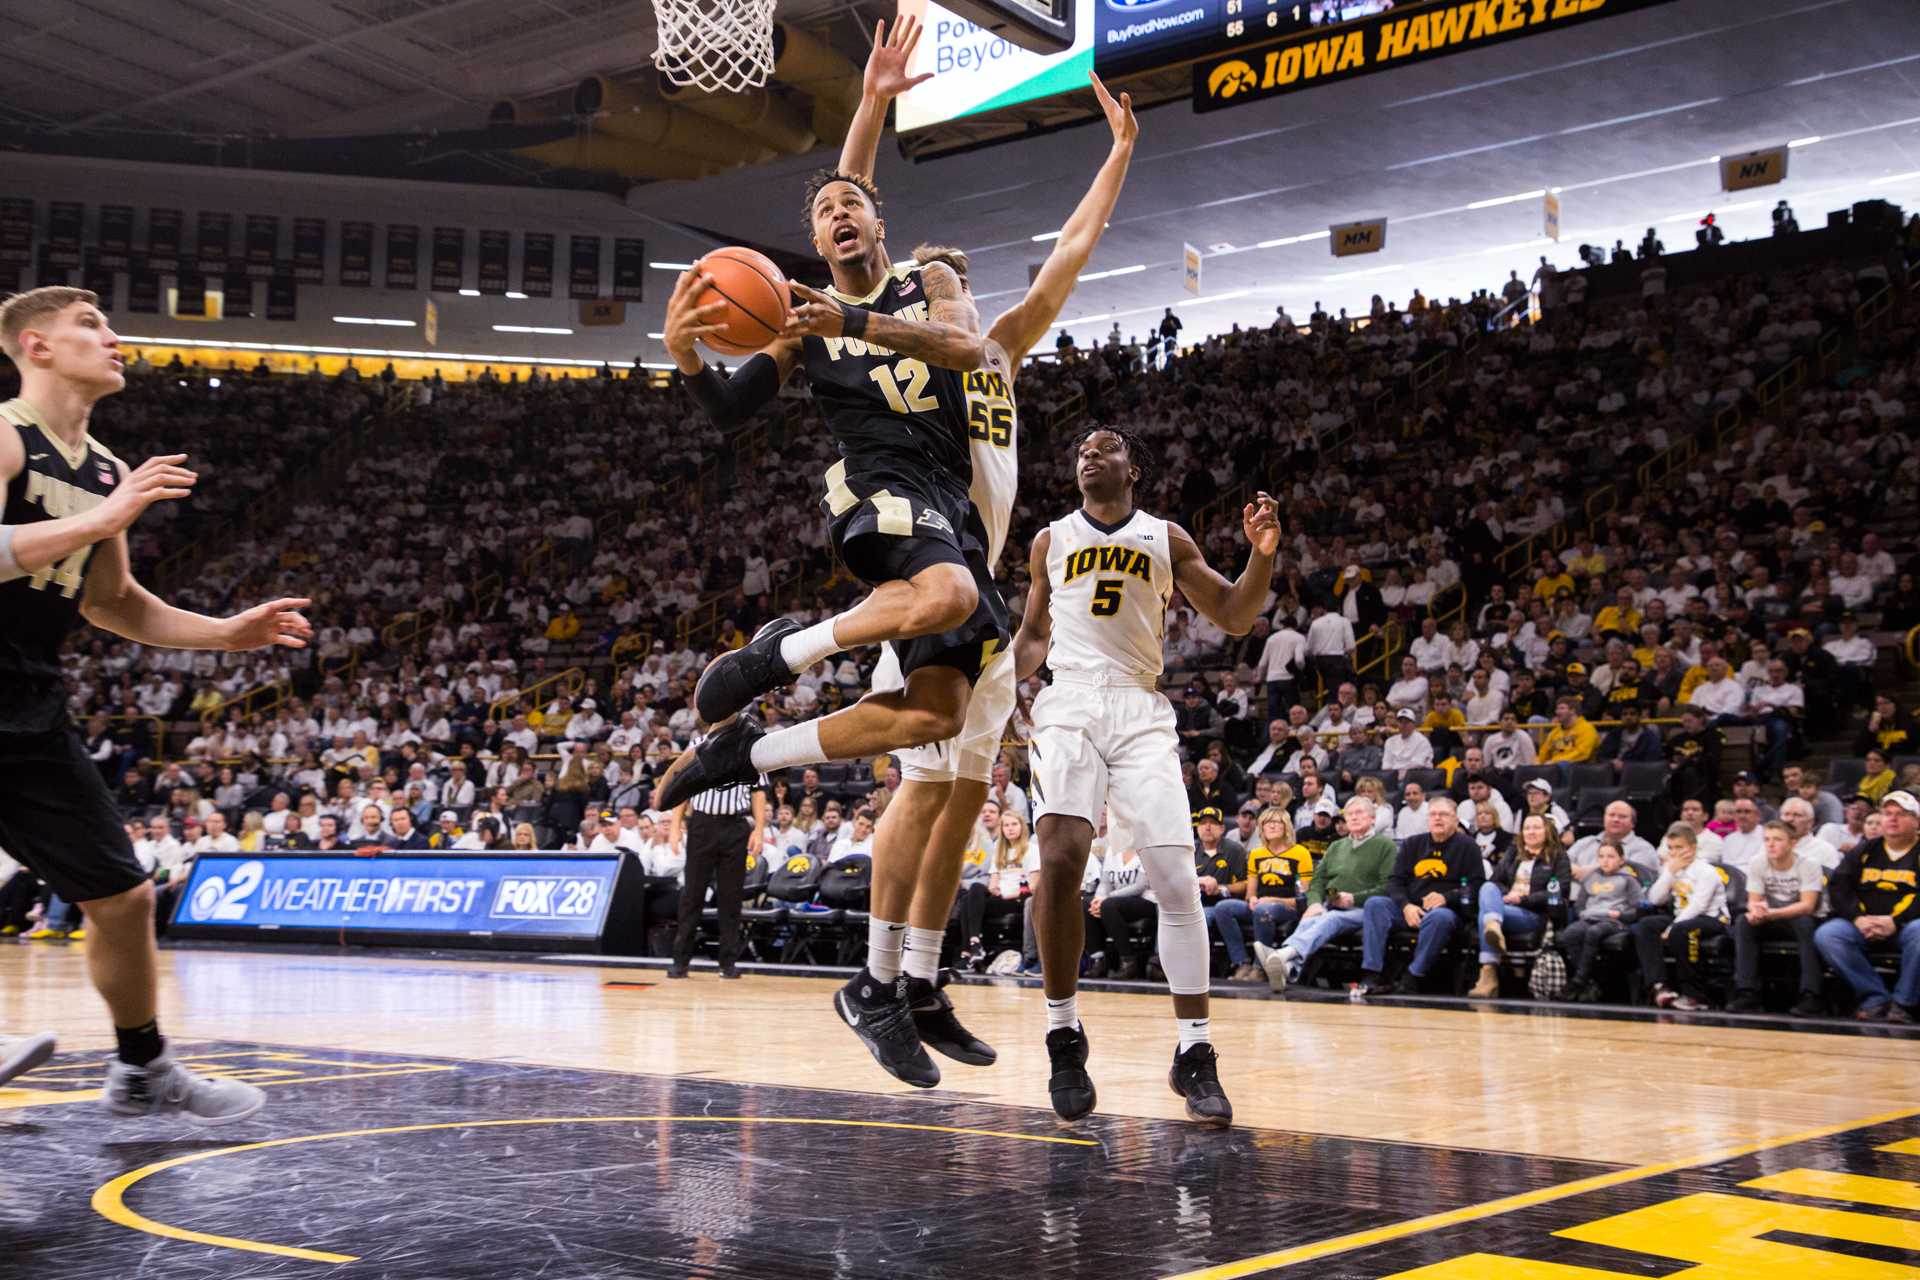 Purdue forward Vincent Edwards twists as he elevates towards the basket during a game against the University of Iowa on Saturday, Jan. 20, 2018. The Boilermakers defeated the Hawkeyes 87-64. (David Harmantas/The Daily Iowan)